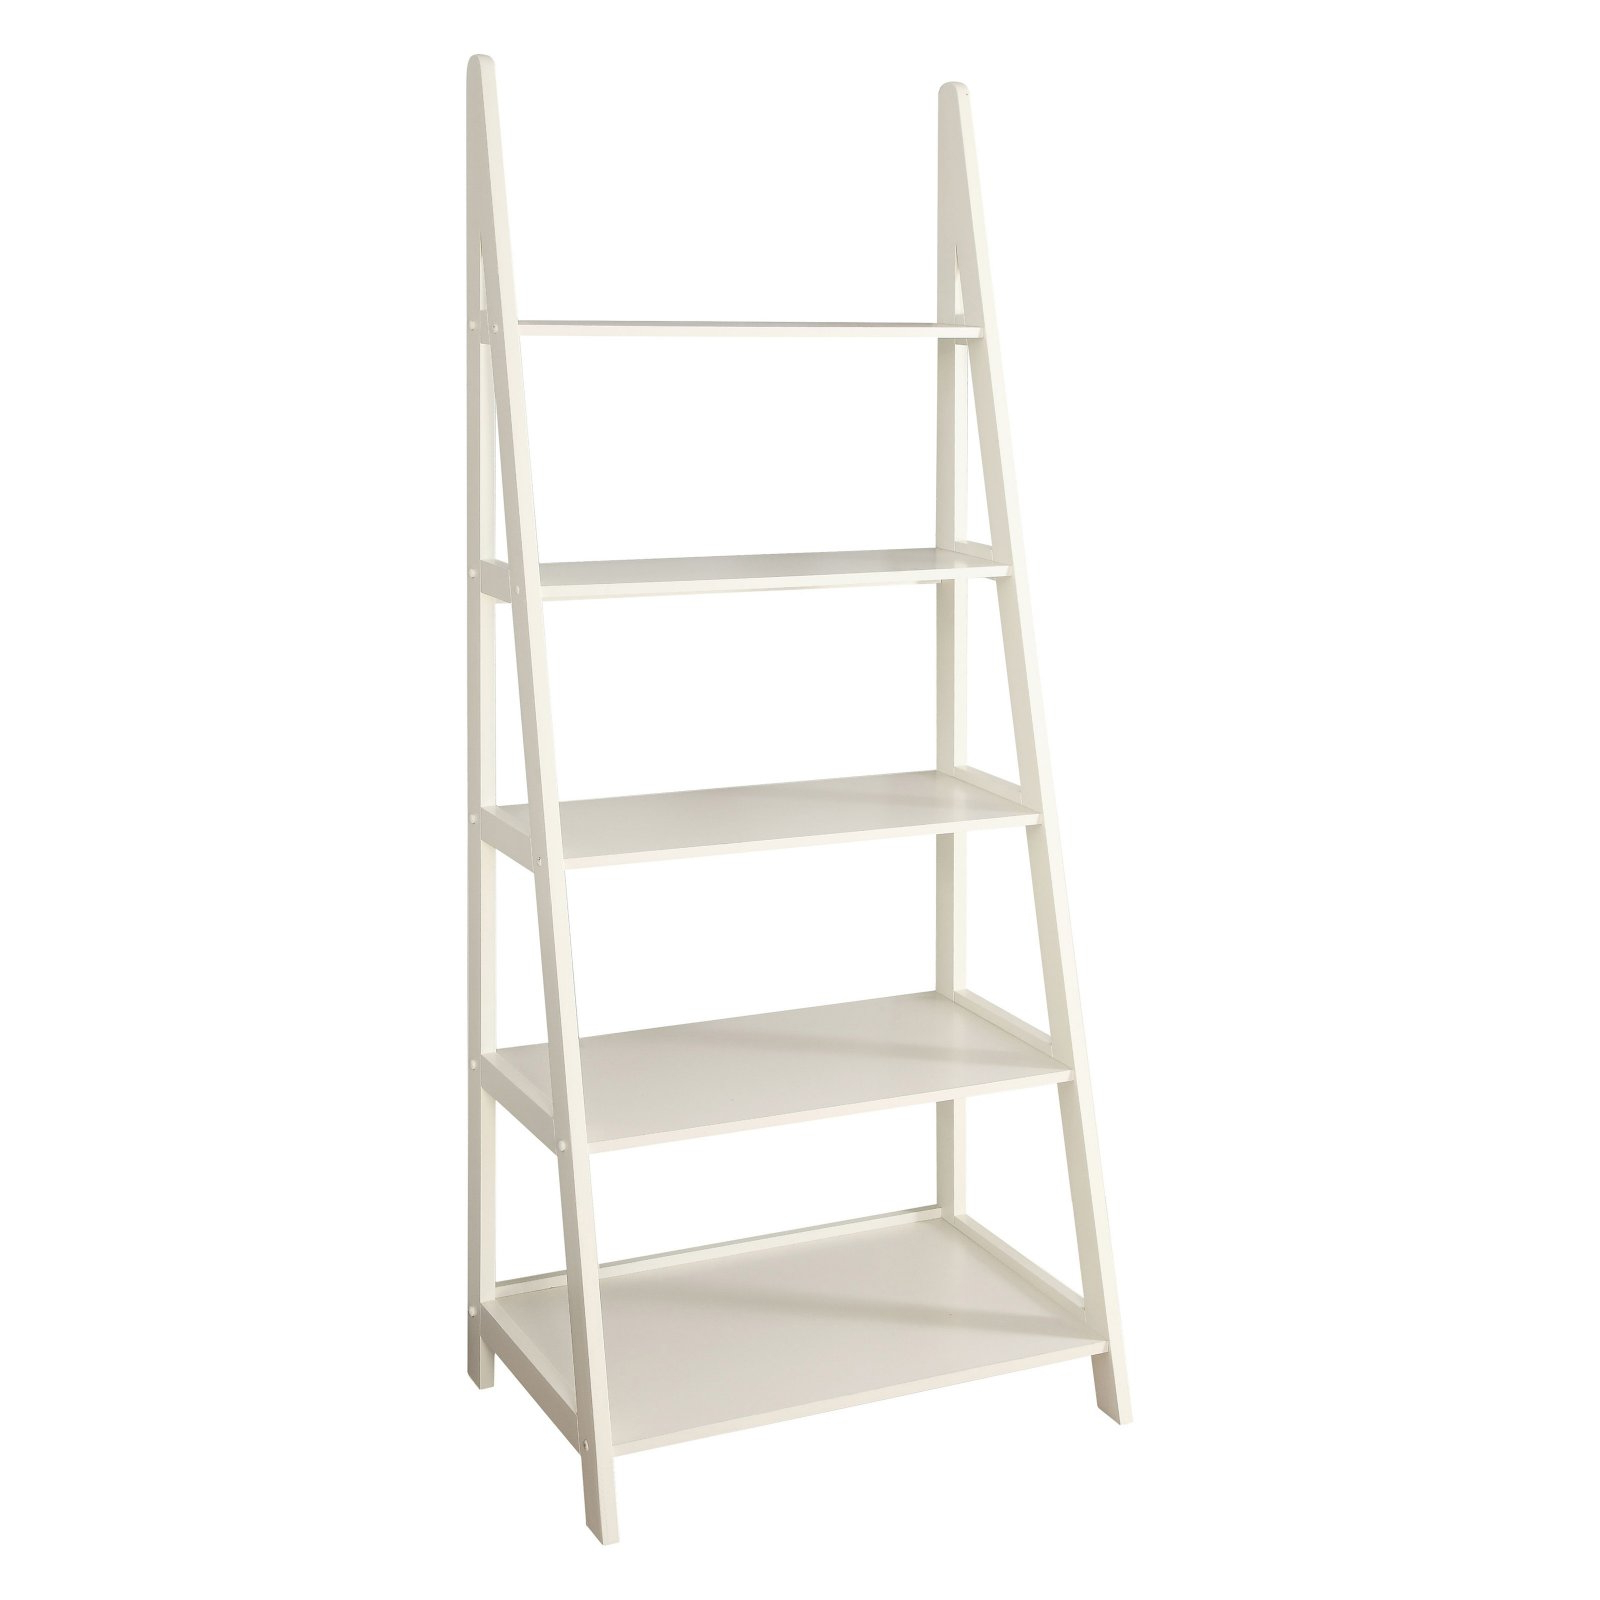 Fashionable Urban Style Living Linden Center Ladder Bookcase In 2019 Inside Rupert Ladder Bookcases (View 7 of 20)